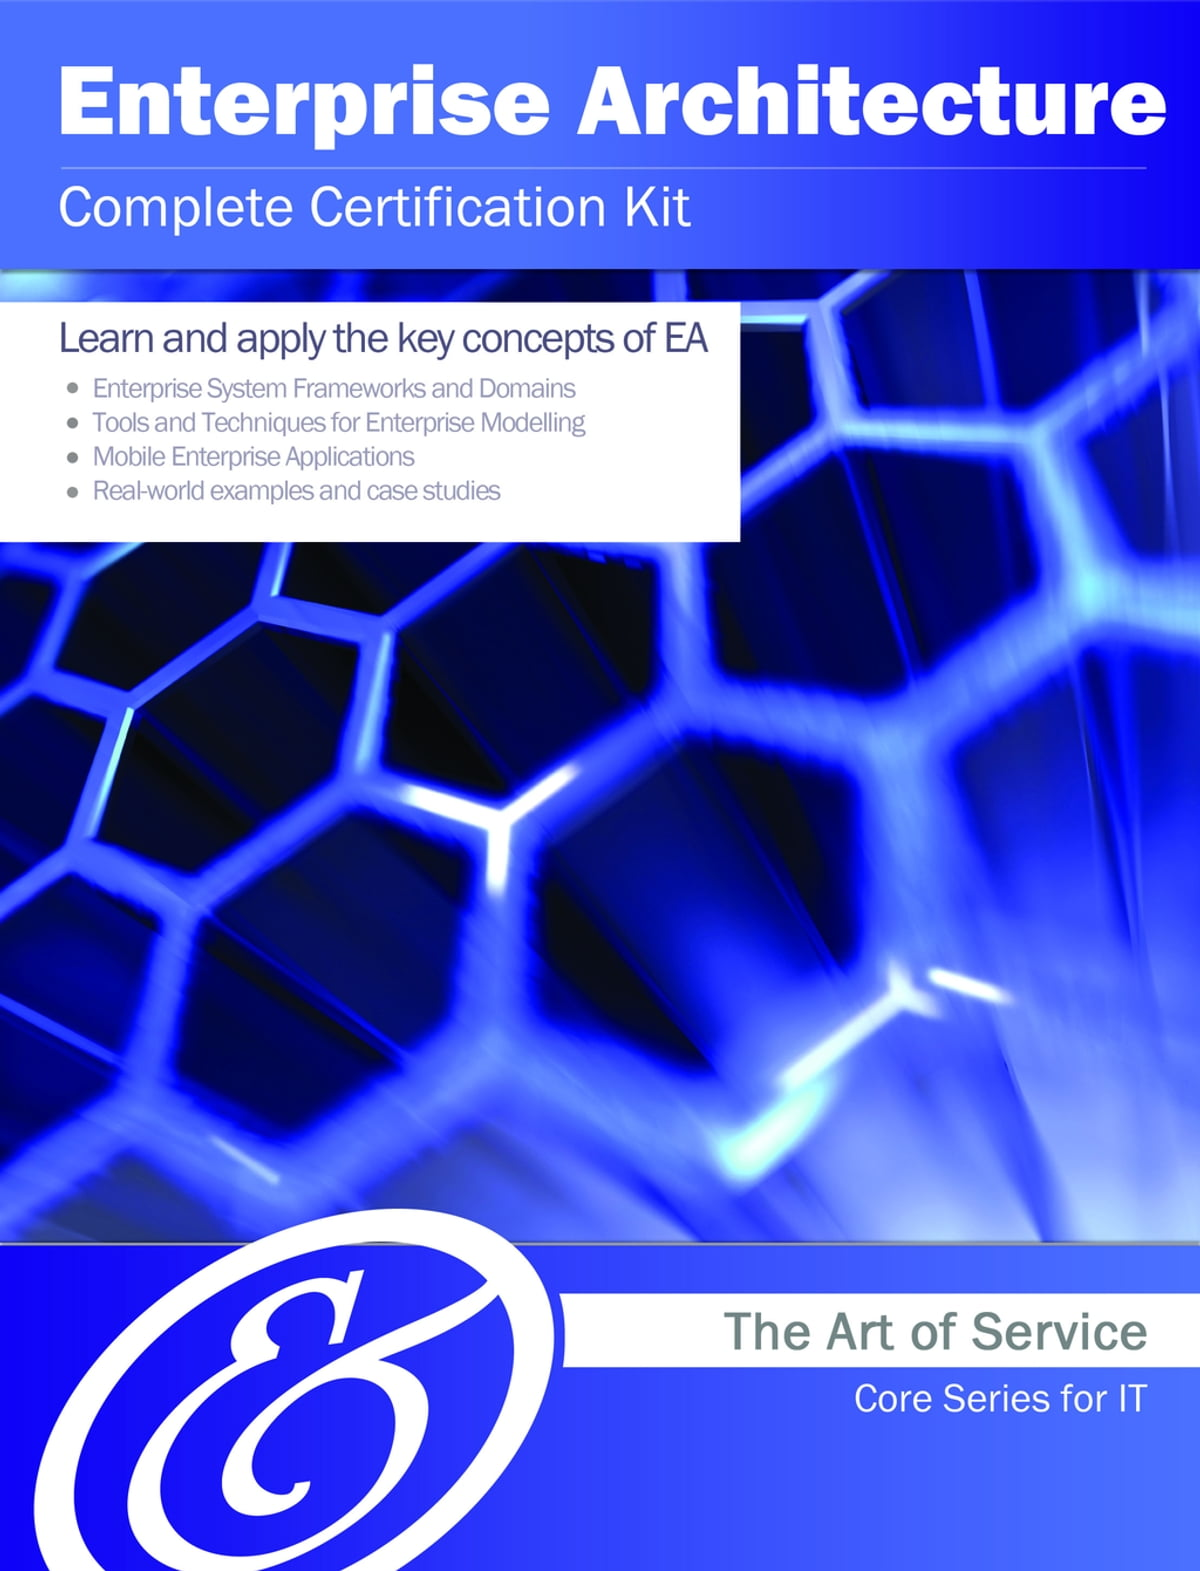 Enterprise Architecture Complete Certification Kit Core Series For